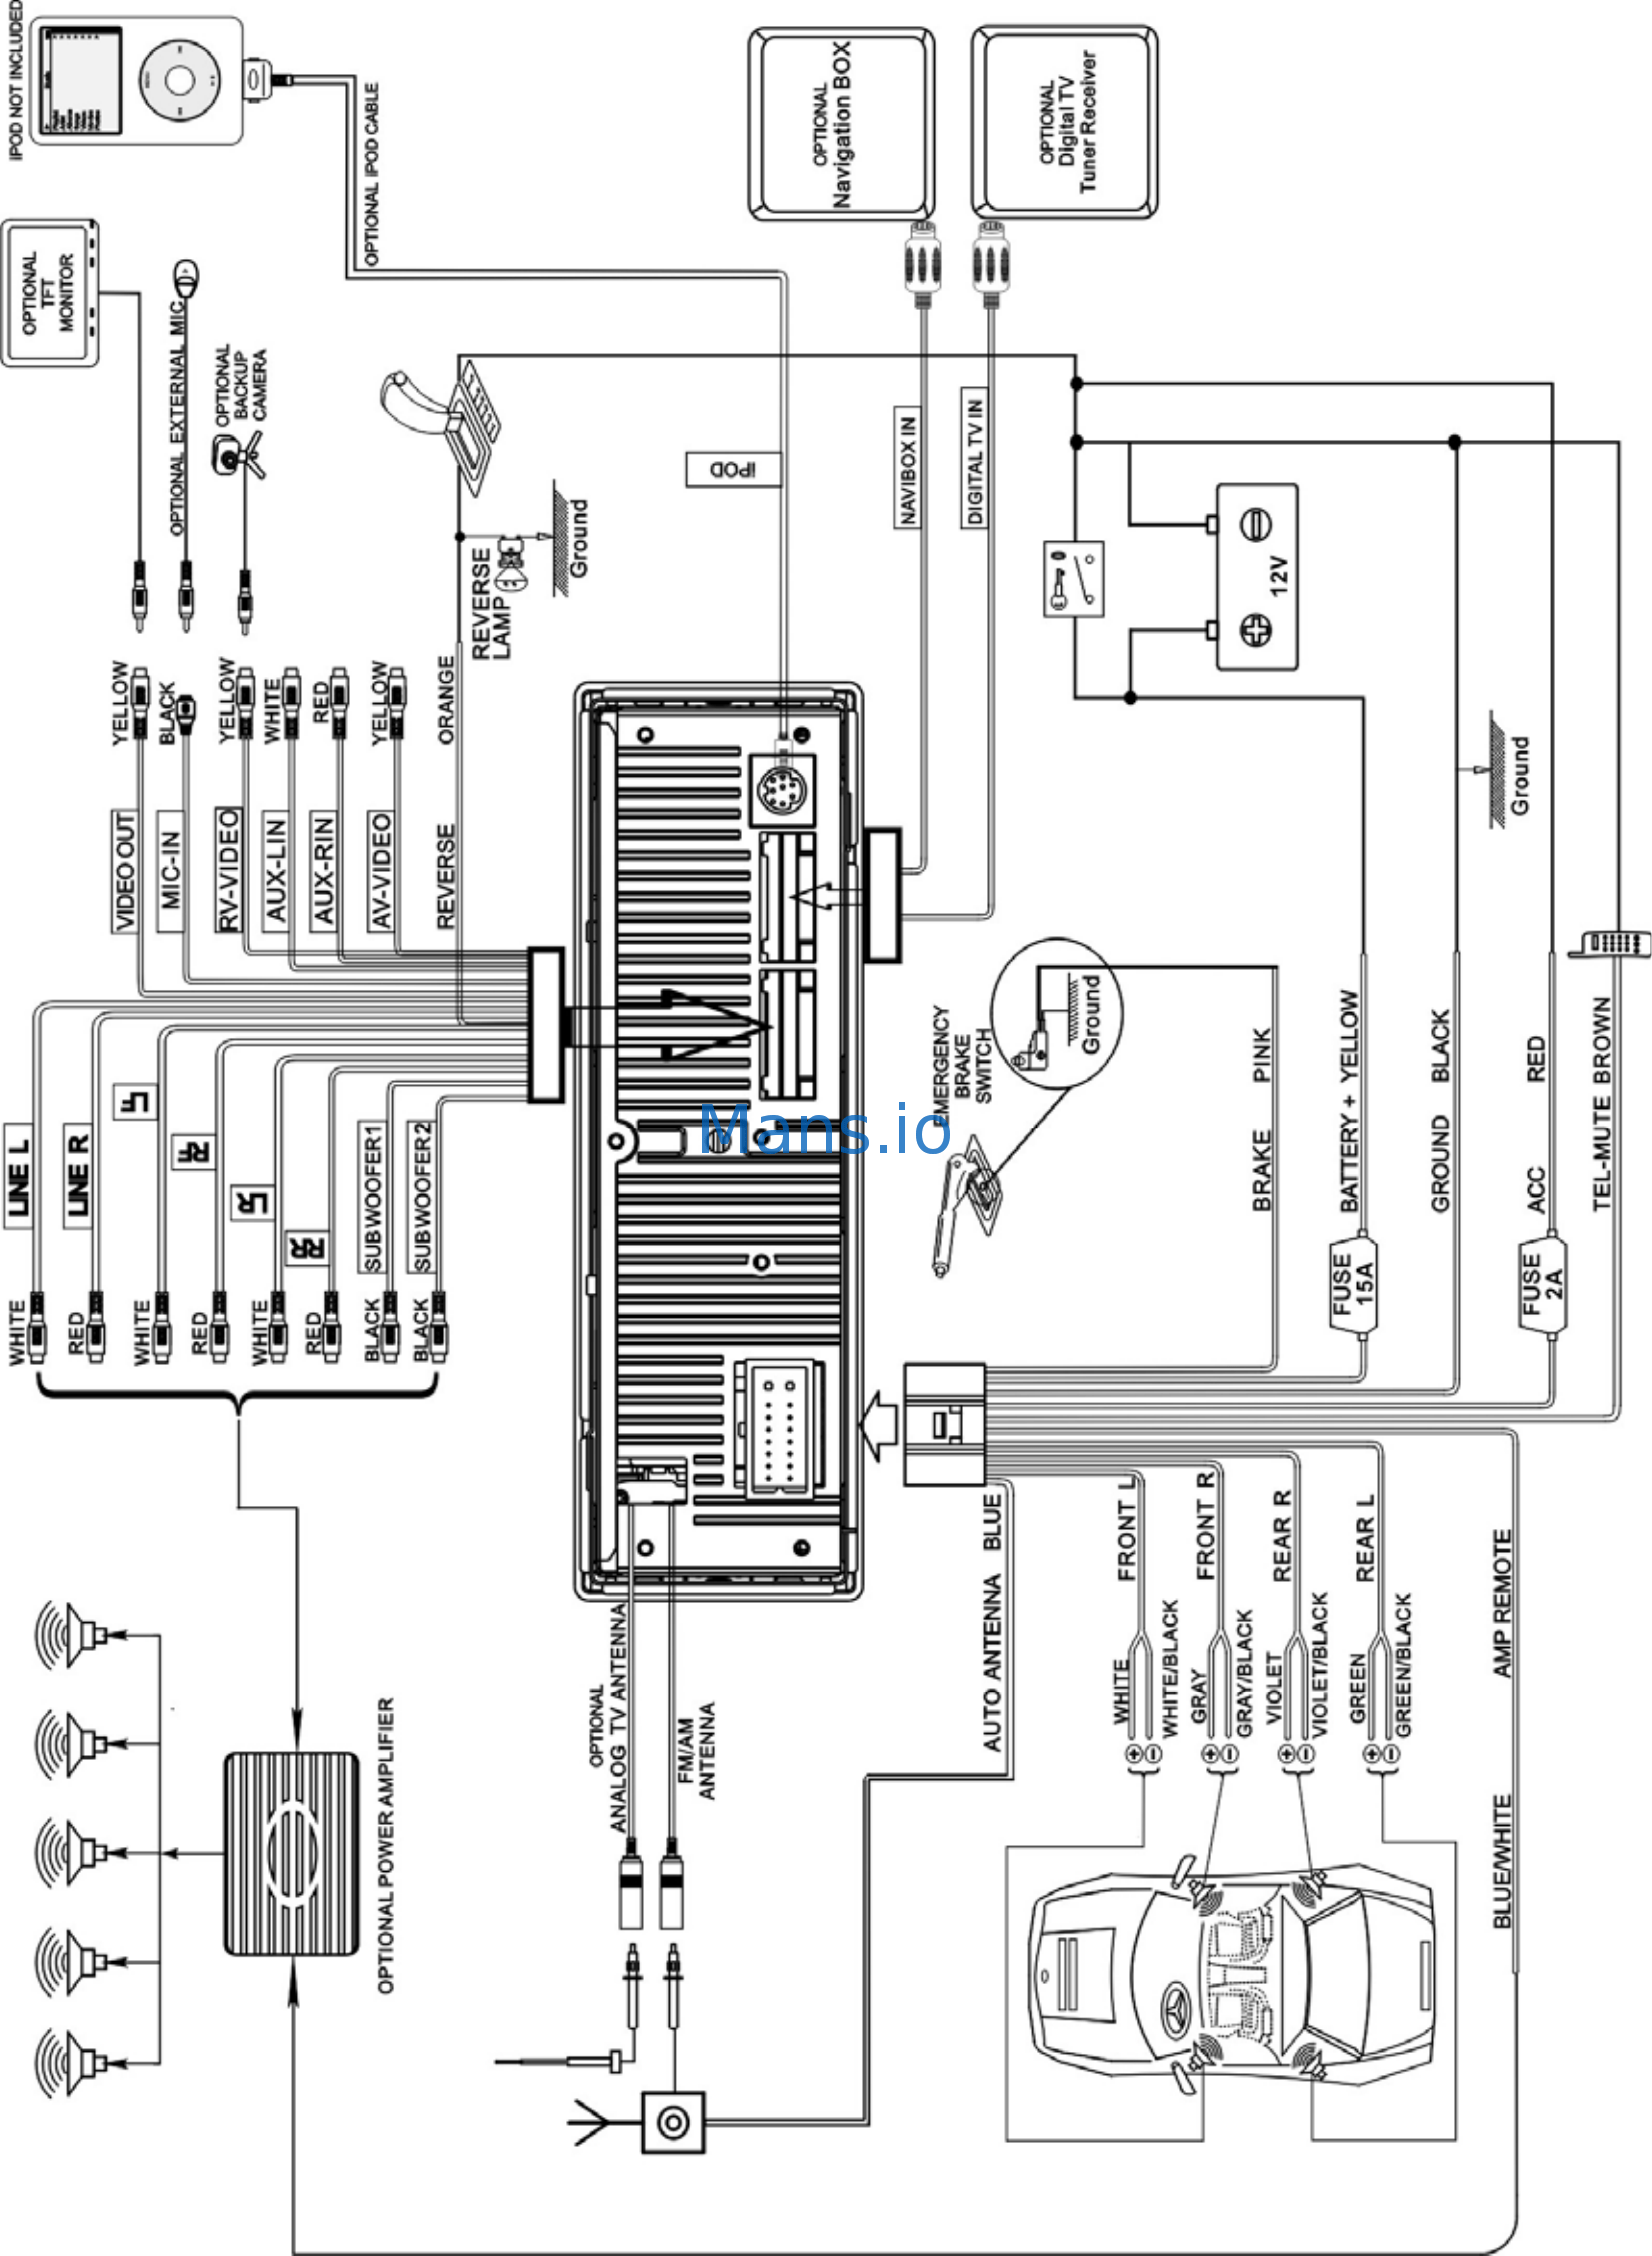 Power Acoustik Ptid 7002nr Wiring Diagram : 41 Wiring